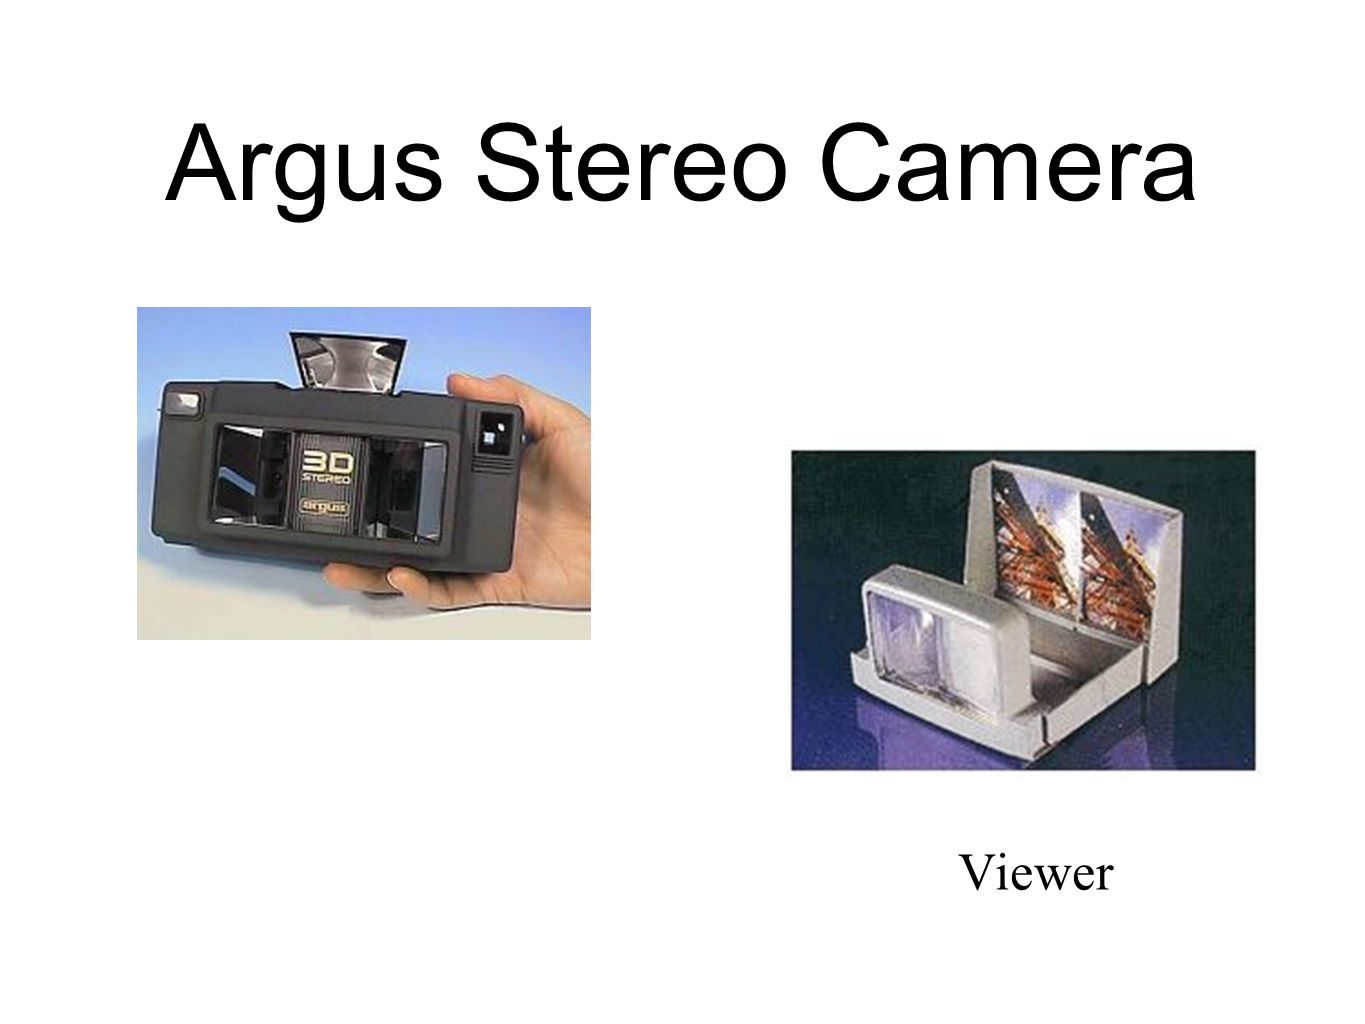 Argus Stereo Camera Viewer